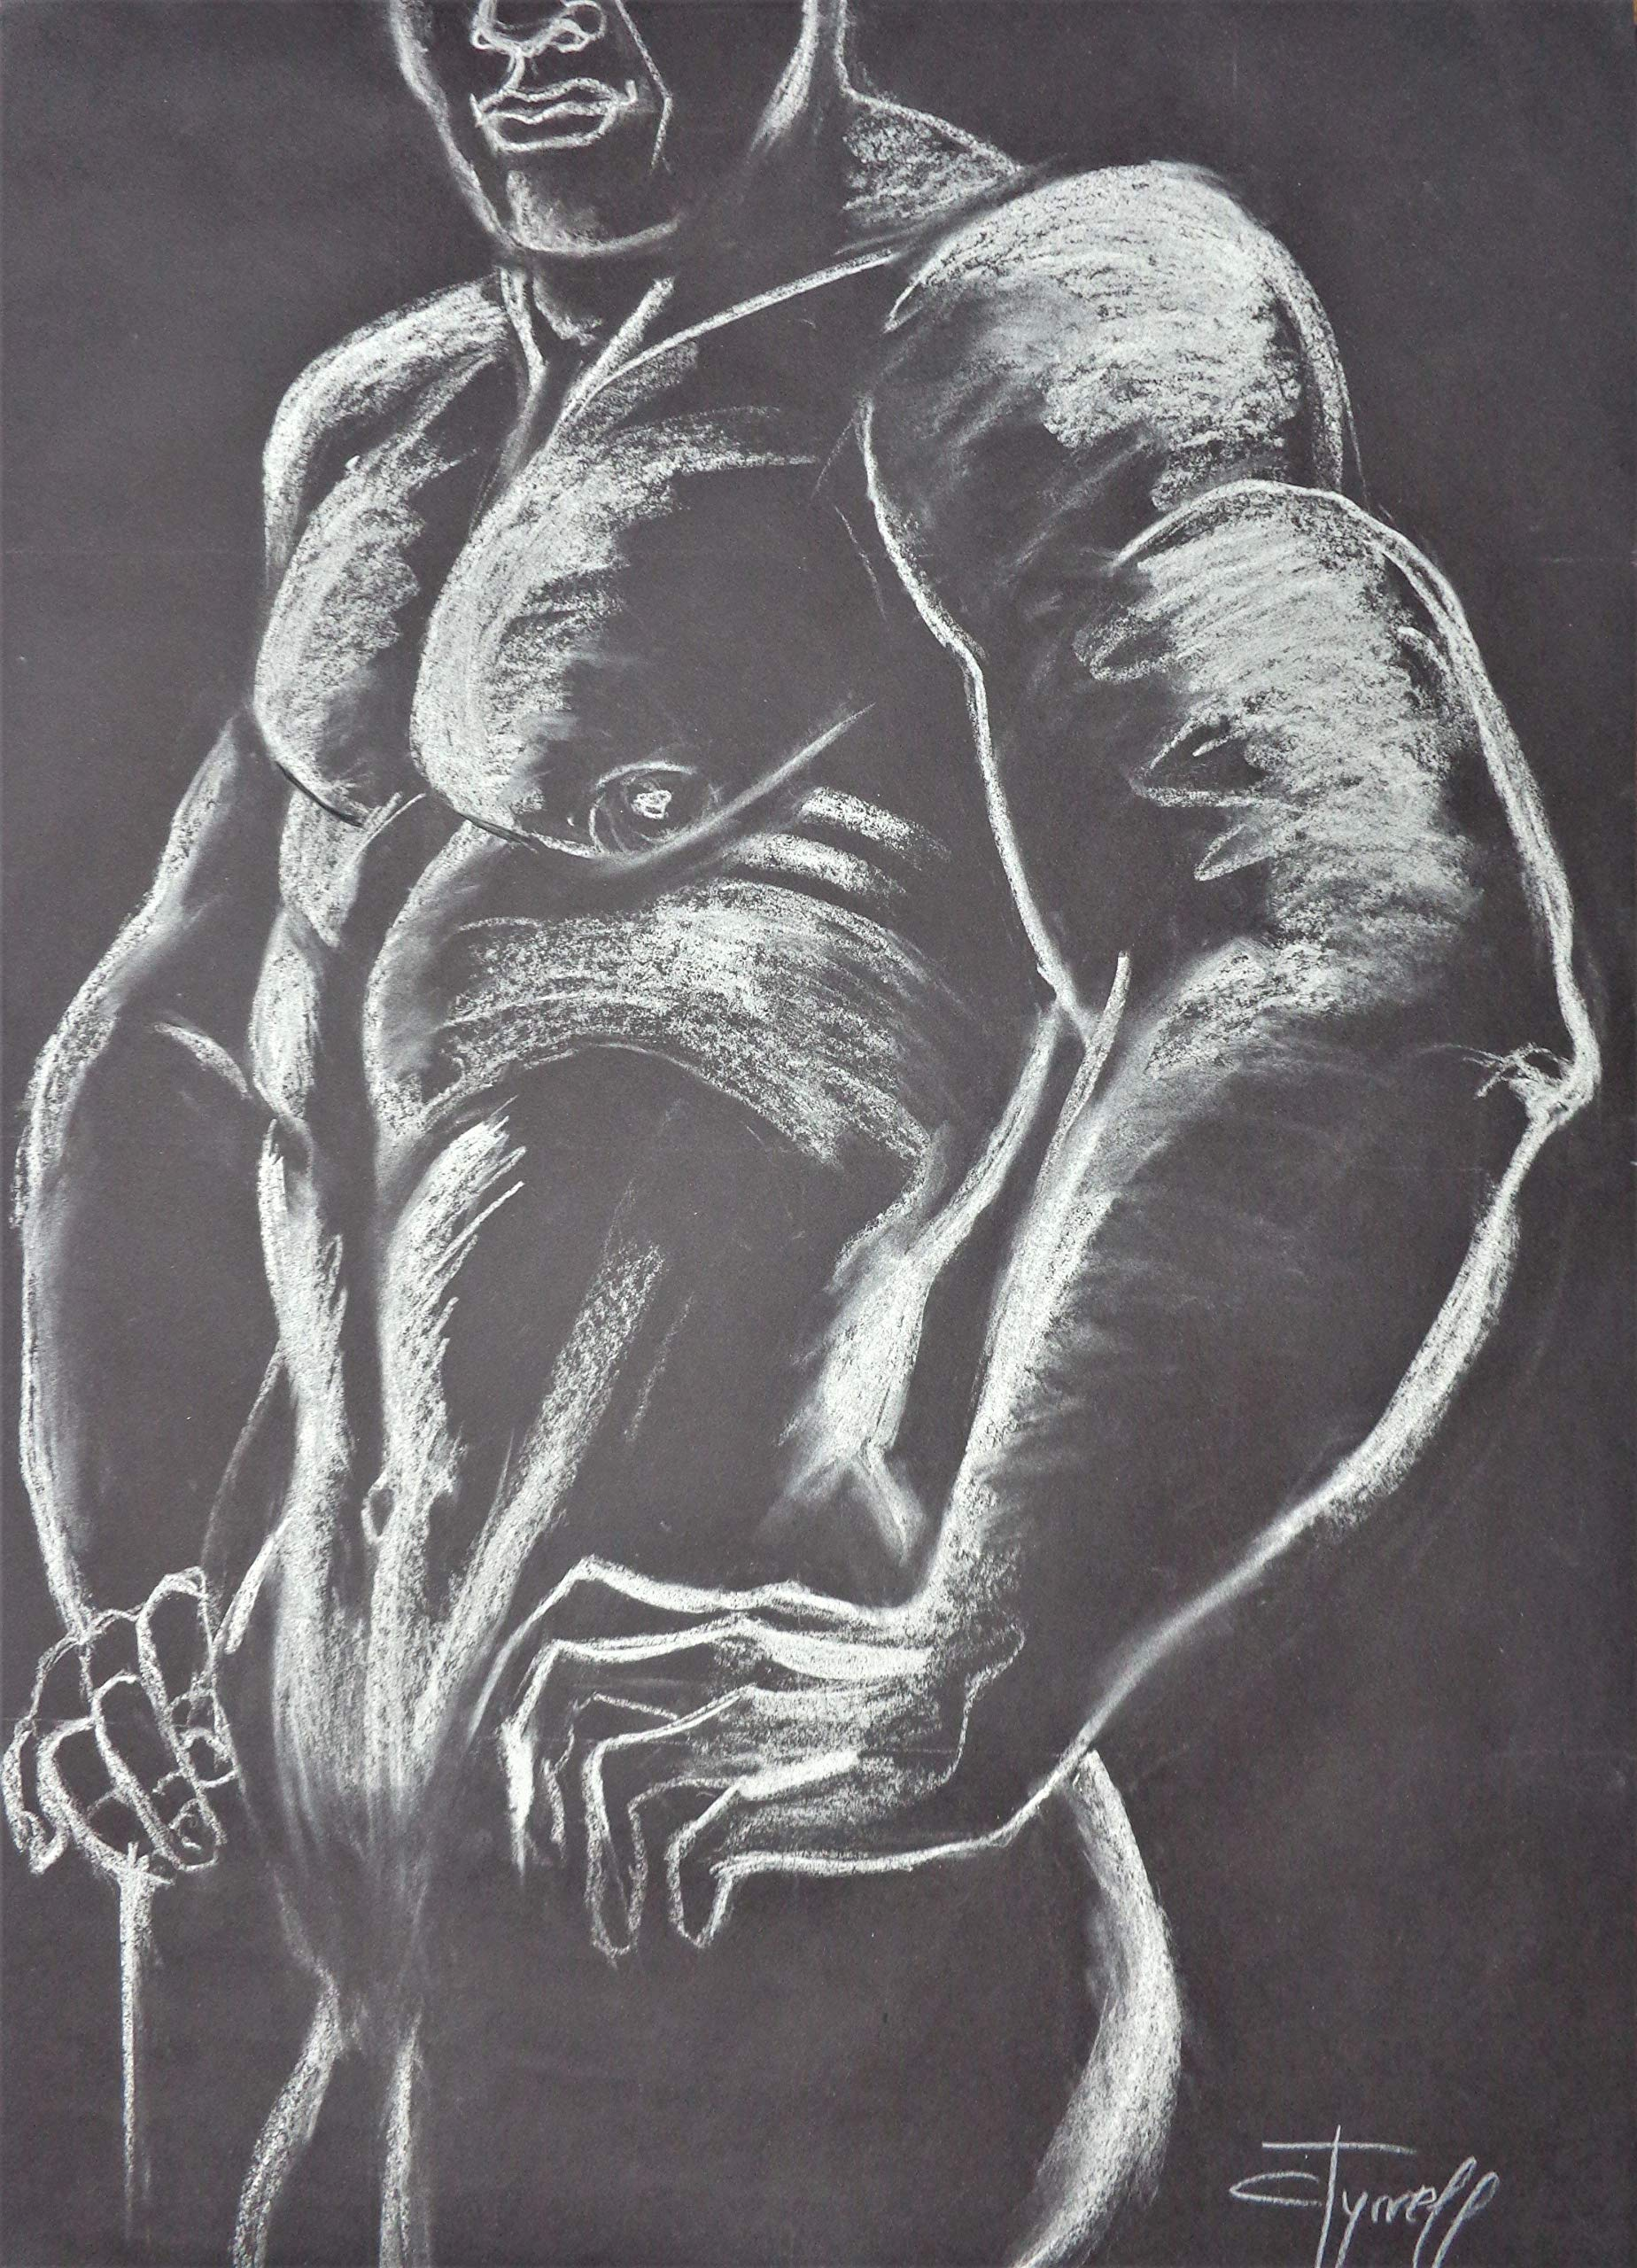 Man Nude Figure 2 by